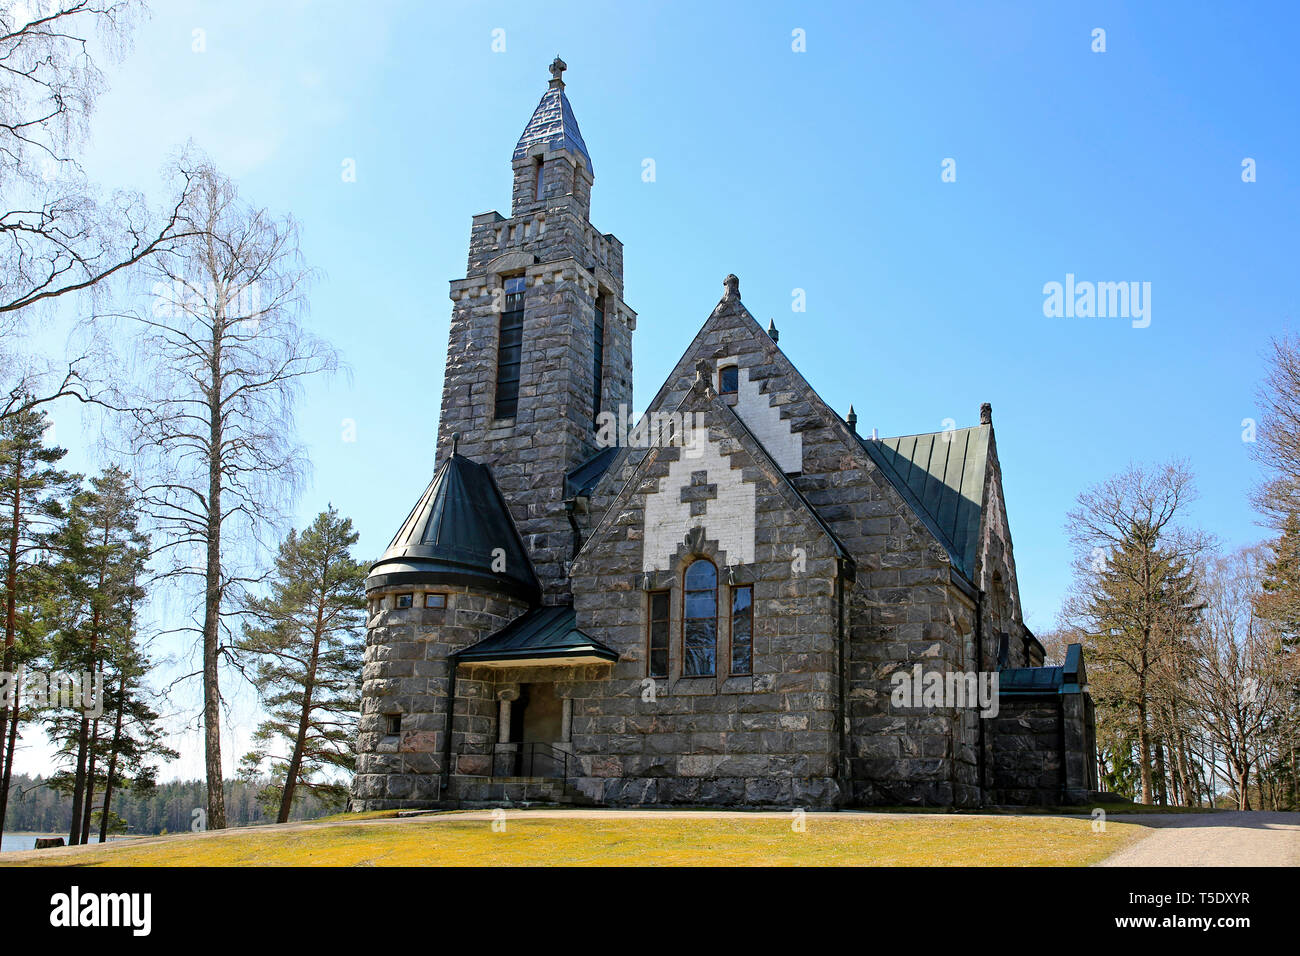 Karuna Church and bell tower in Karuna, Sauvo, South of Finland in spring.The church was built in 1908-10 in the style of Finnish National Romanticism - Stock Image